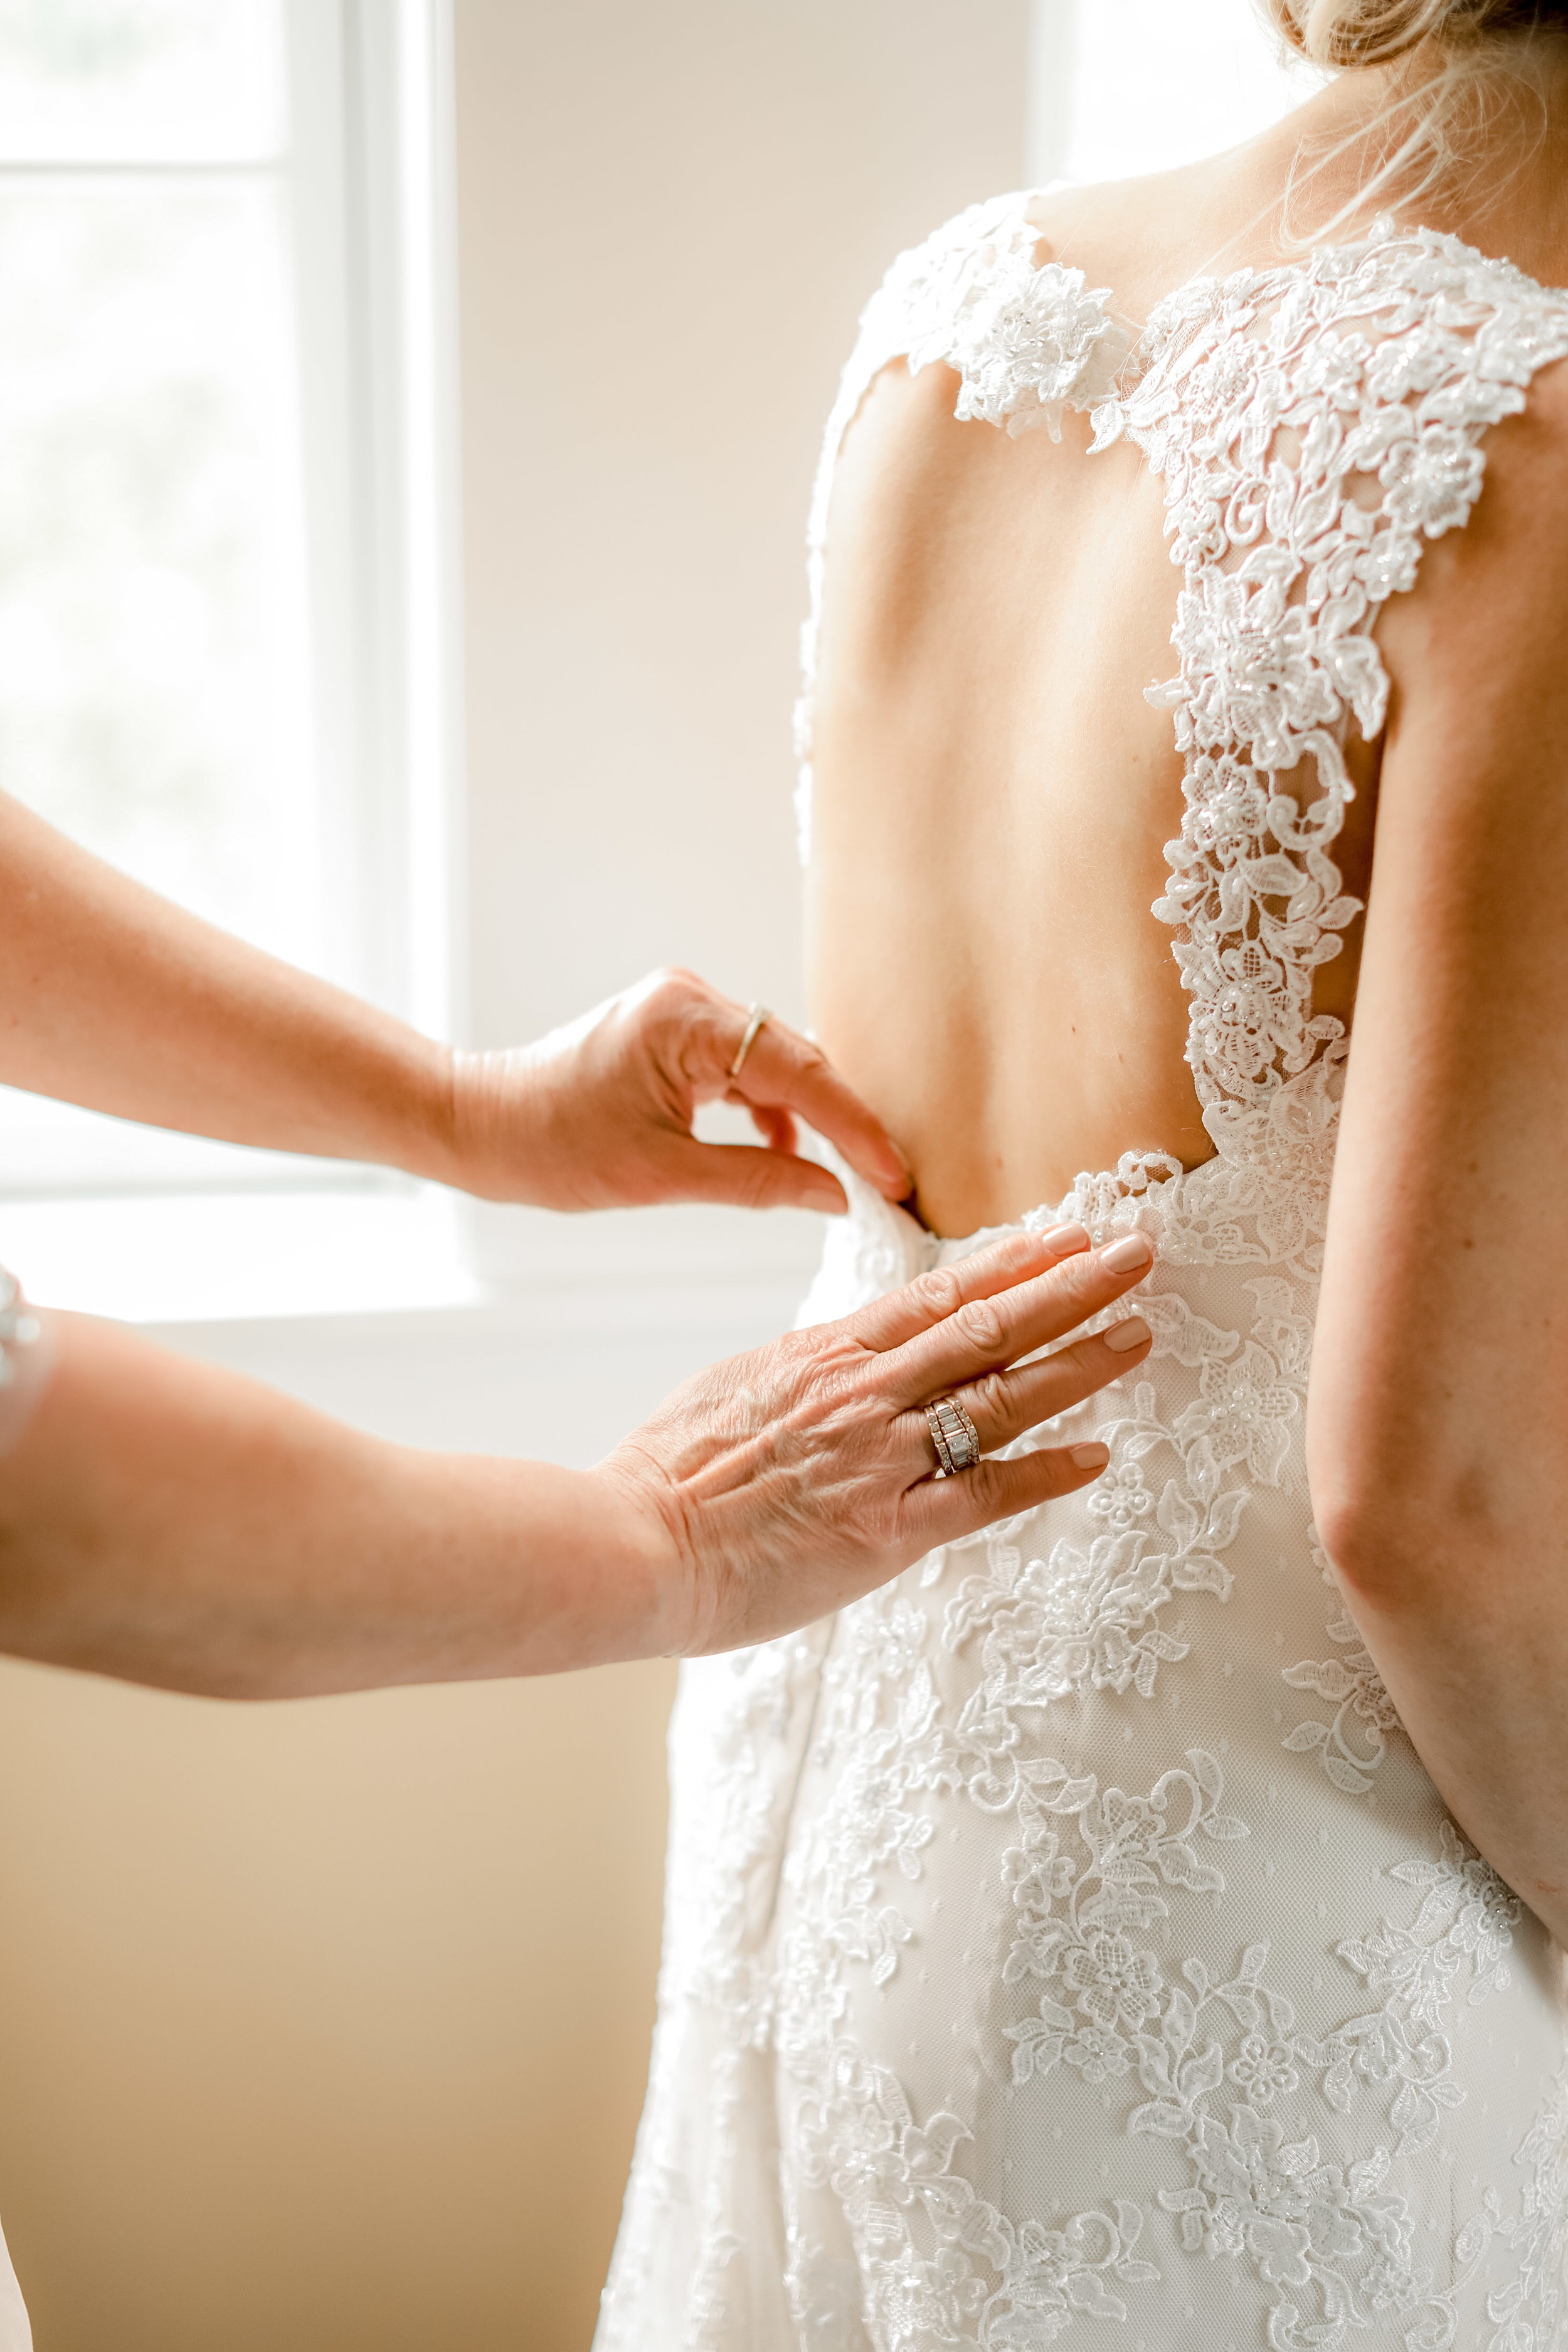 3. You'll find little alterations and fixes to your dress to make it more comfortable on your wedding day! - This is a huge one! Friends, alterations are not enough to gauge whether or not you'll feel completely comfortable in your wedding dress. After spending an hour or two walking around and moving in your dress, you'll find something that you can alter in order to make it more comfy! For example, I had my wedding dress altered maybe two times to adjust the fit of the dress. It was a snug fit around the waist, but I imagined that after a few fittings it would stretch and I'd get into it just fine. Then came my bridal session and I was just way too uncomfortable to be traipsing around the gardens were were at. I evaluated the cause of the discomfort and decided to undo an elastic band on the inside of the dress. After this, I was the most comfortable I'd been in the dress so far and the change did not affect the way it looked on me. I was SO THANKFUL! There's nothing worse than feeling so beautiful on one of the most important days of your life but being super uncomfortable and possibly in pain. Bridal sessions for the win!